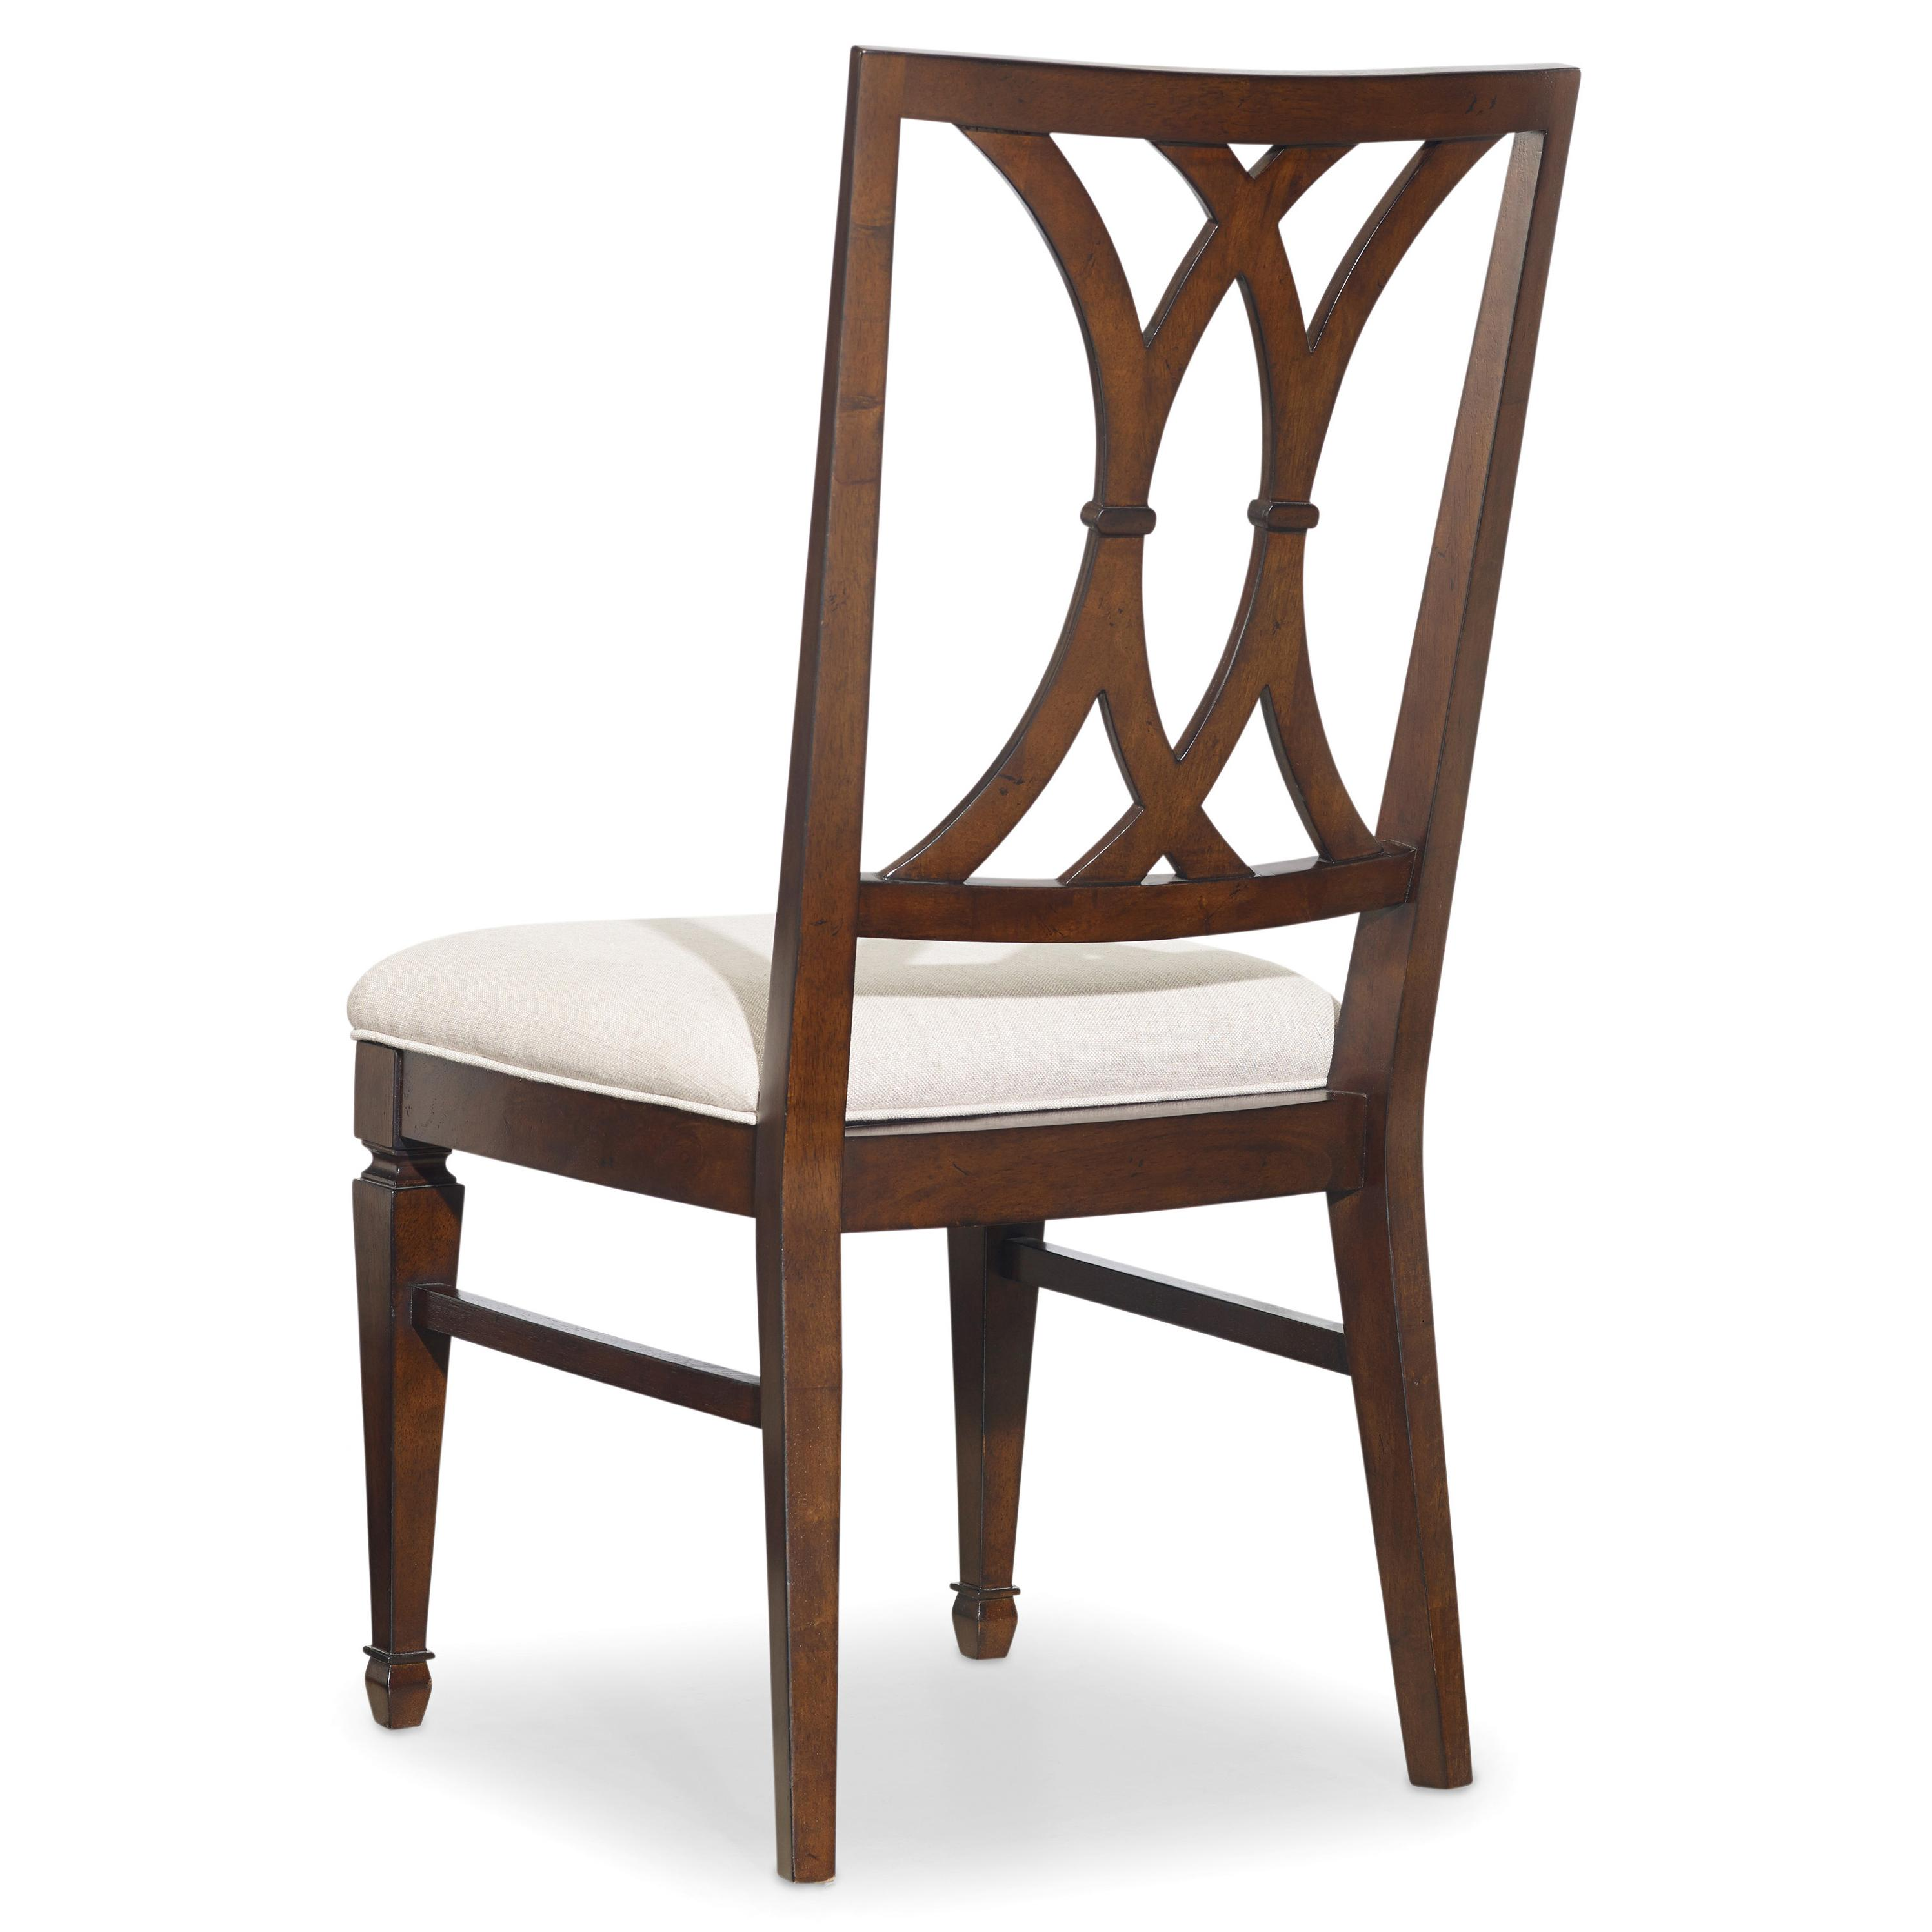 Hooker Furniture Palisade Splat Back Side Chair - Item Number: 5183-75310